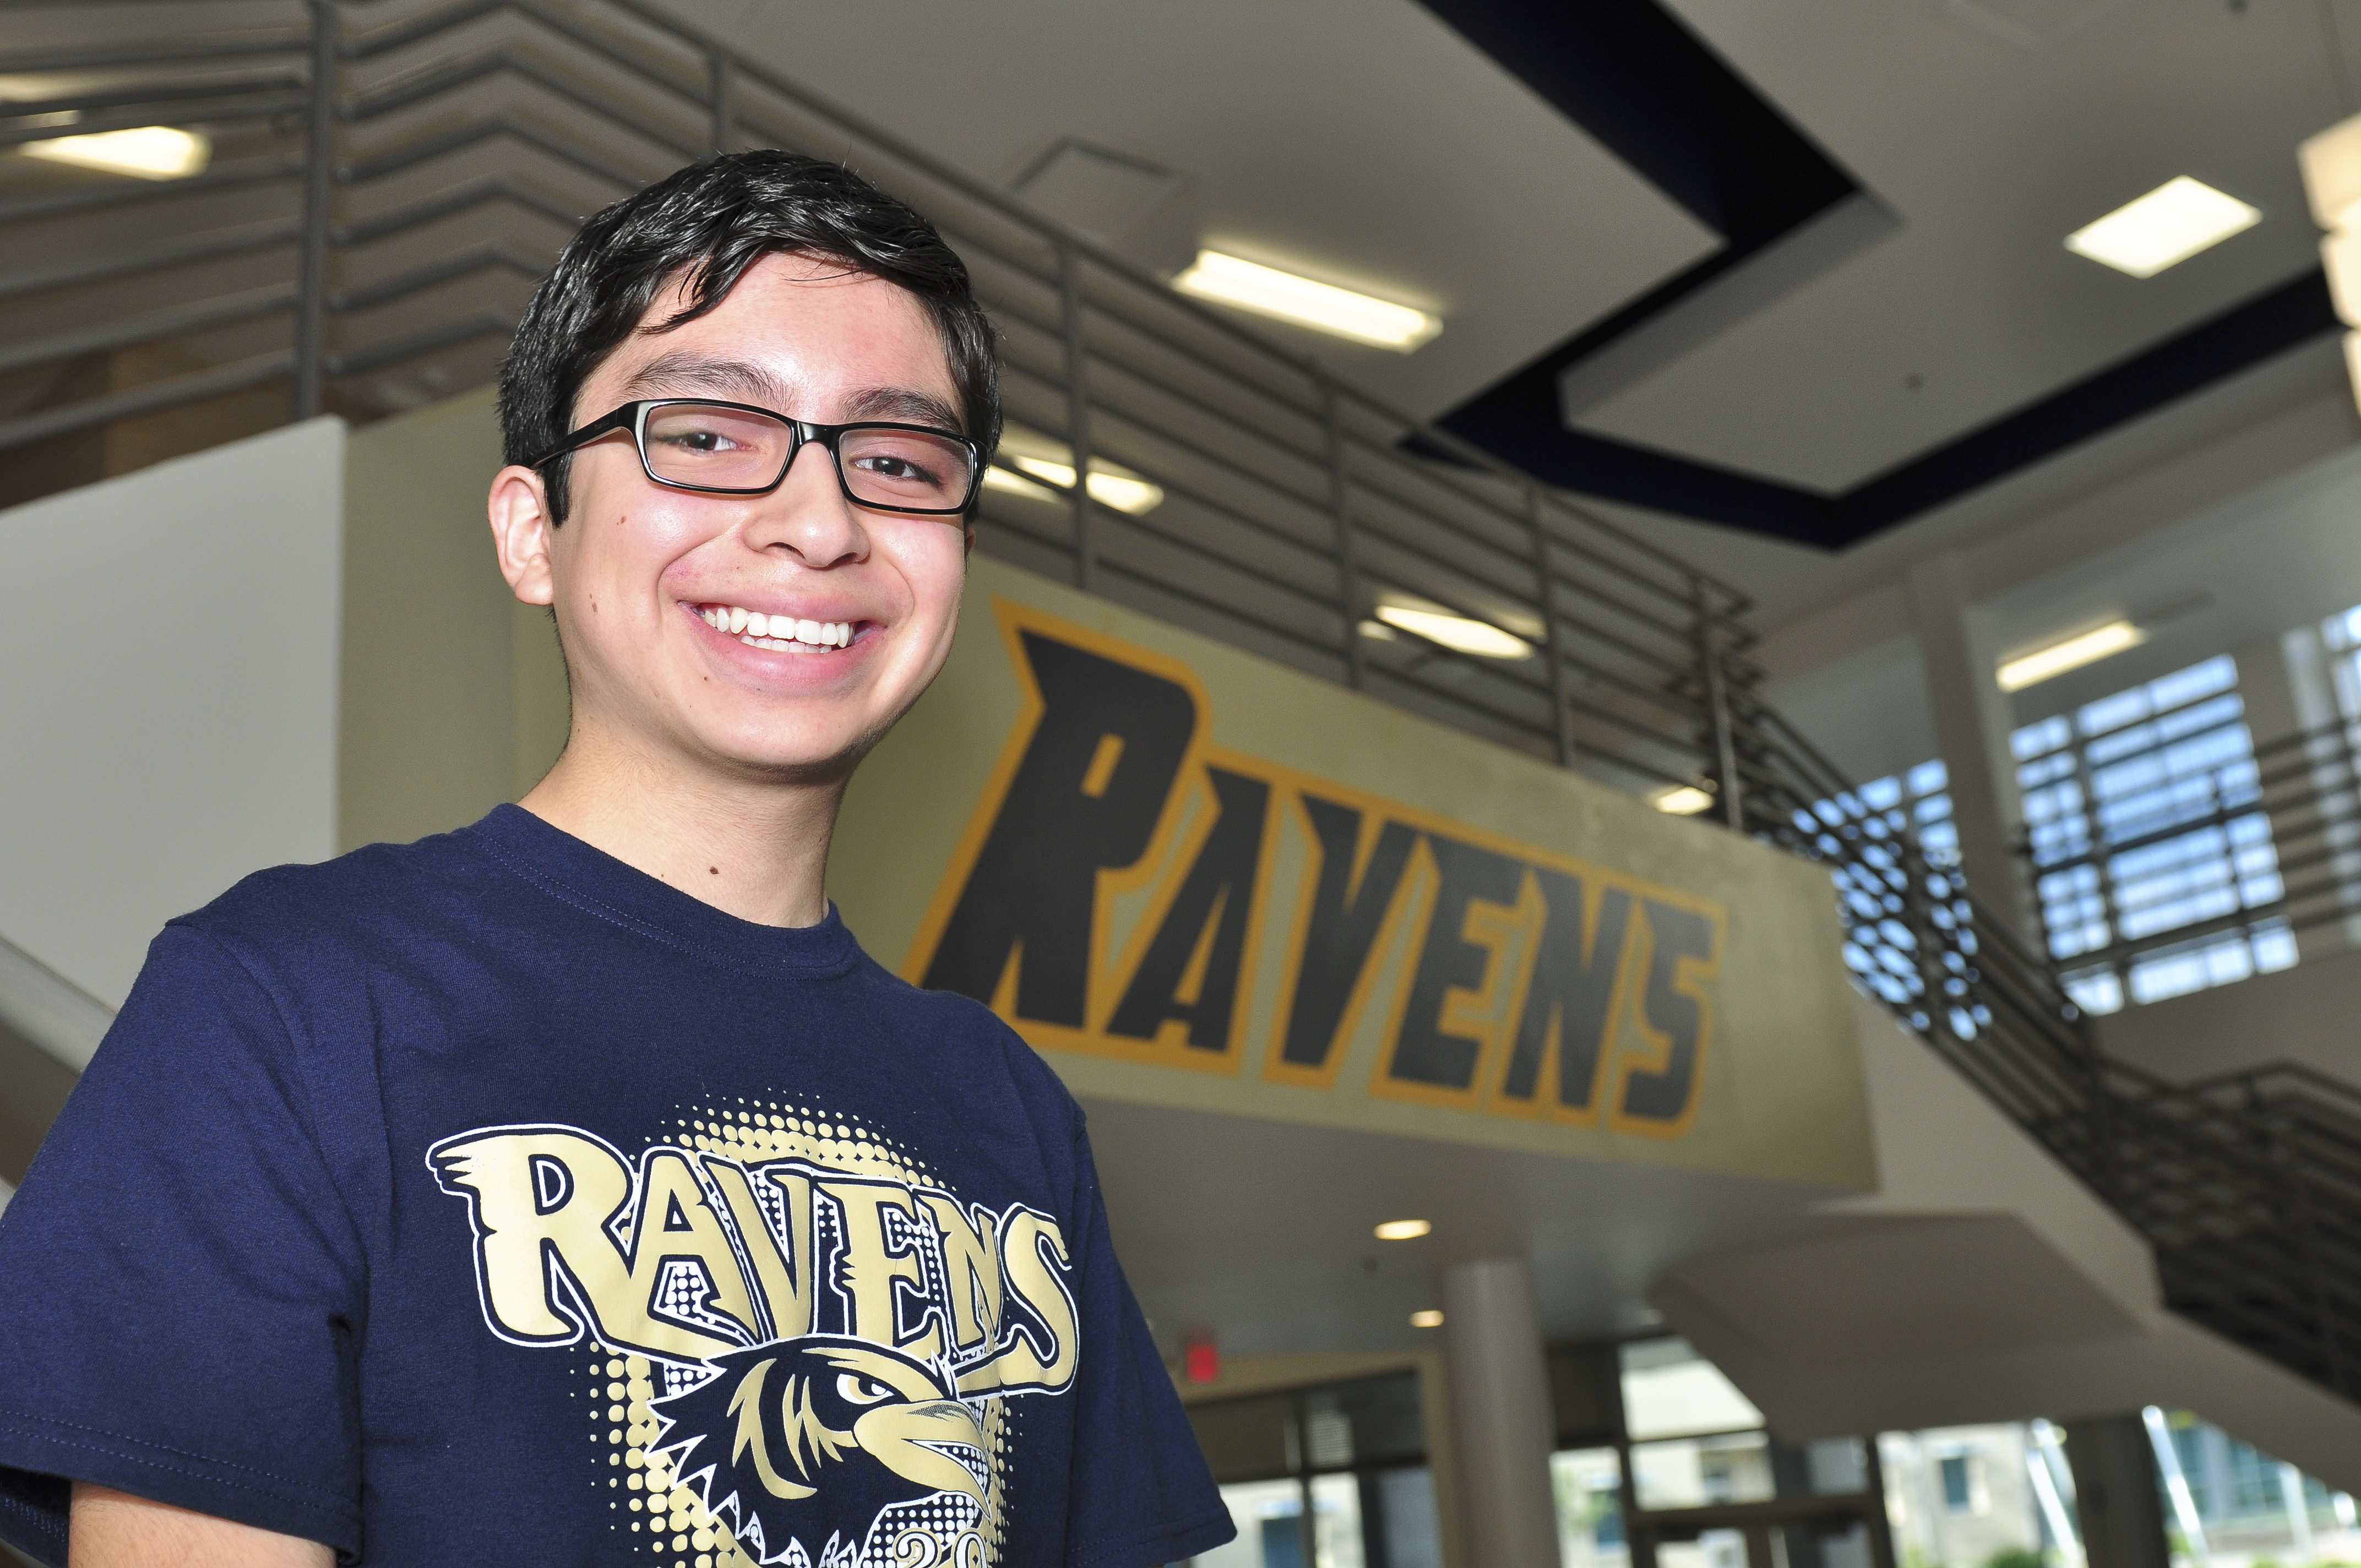 Future-minded Raven on a mission for excellence